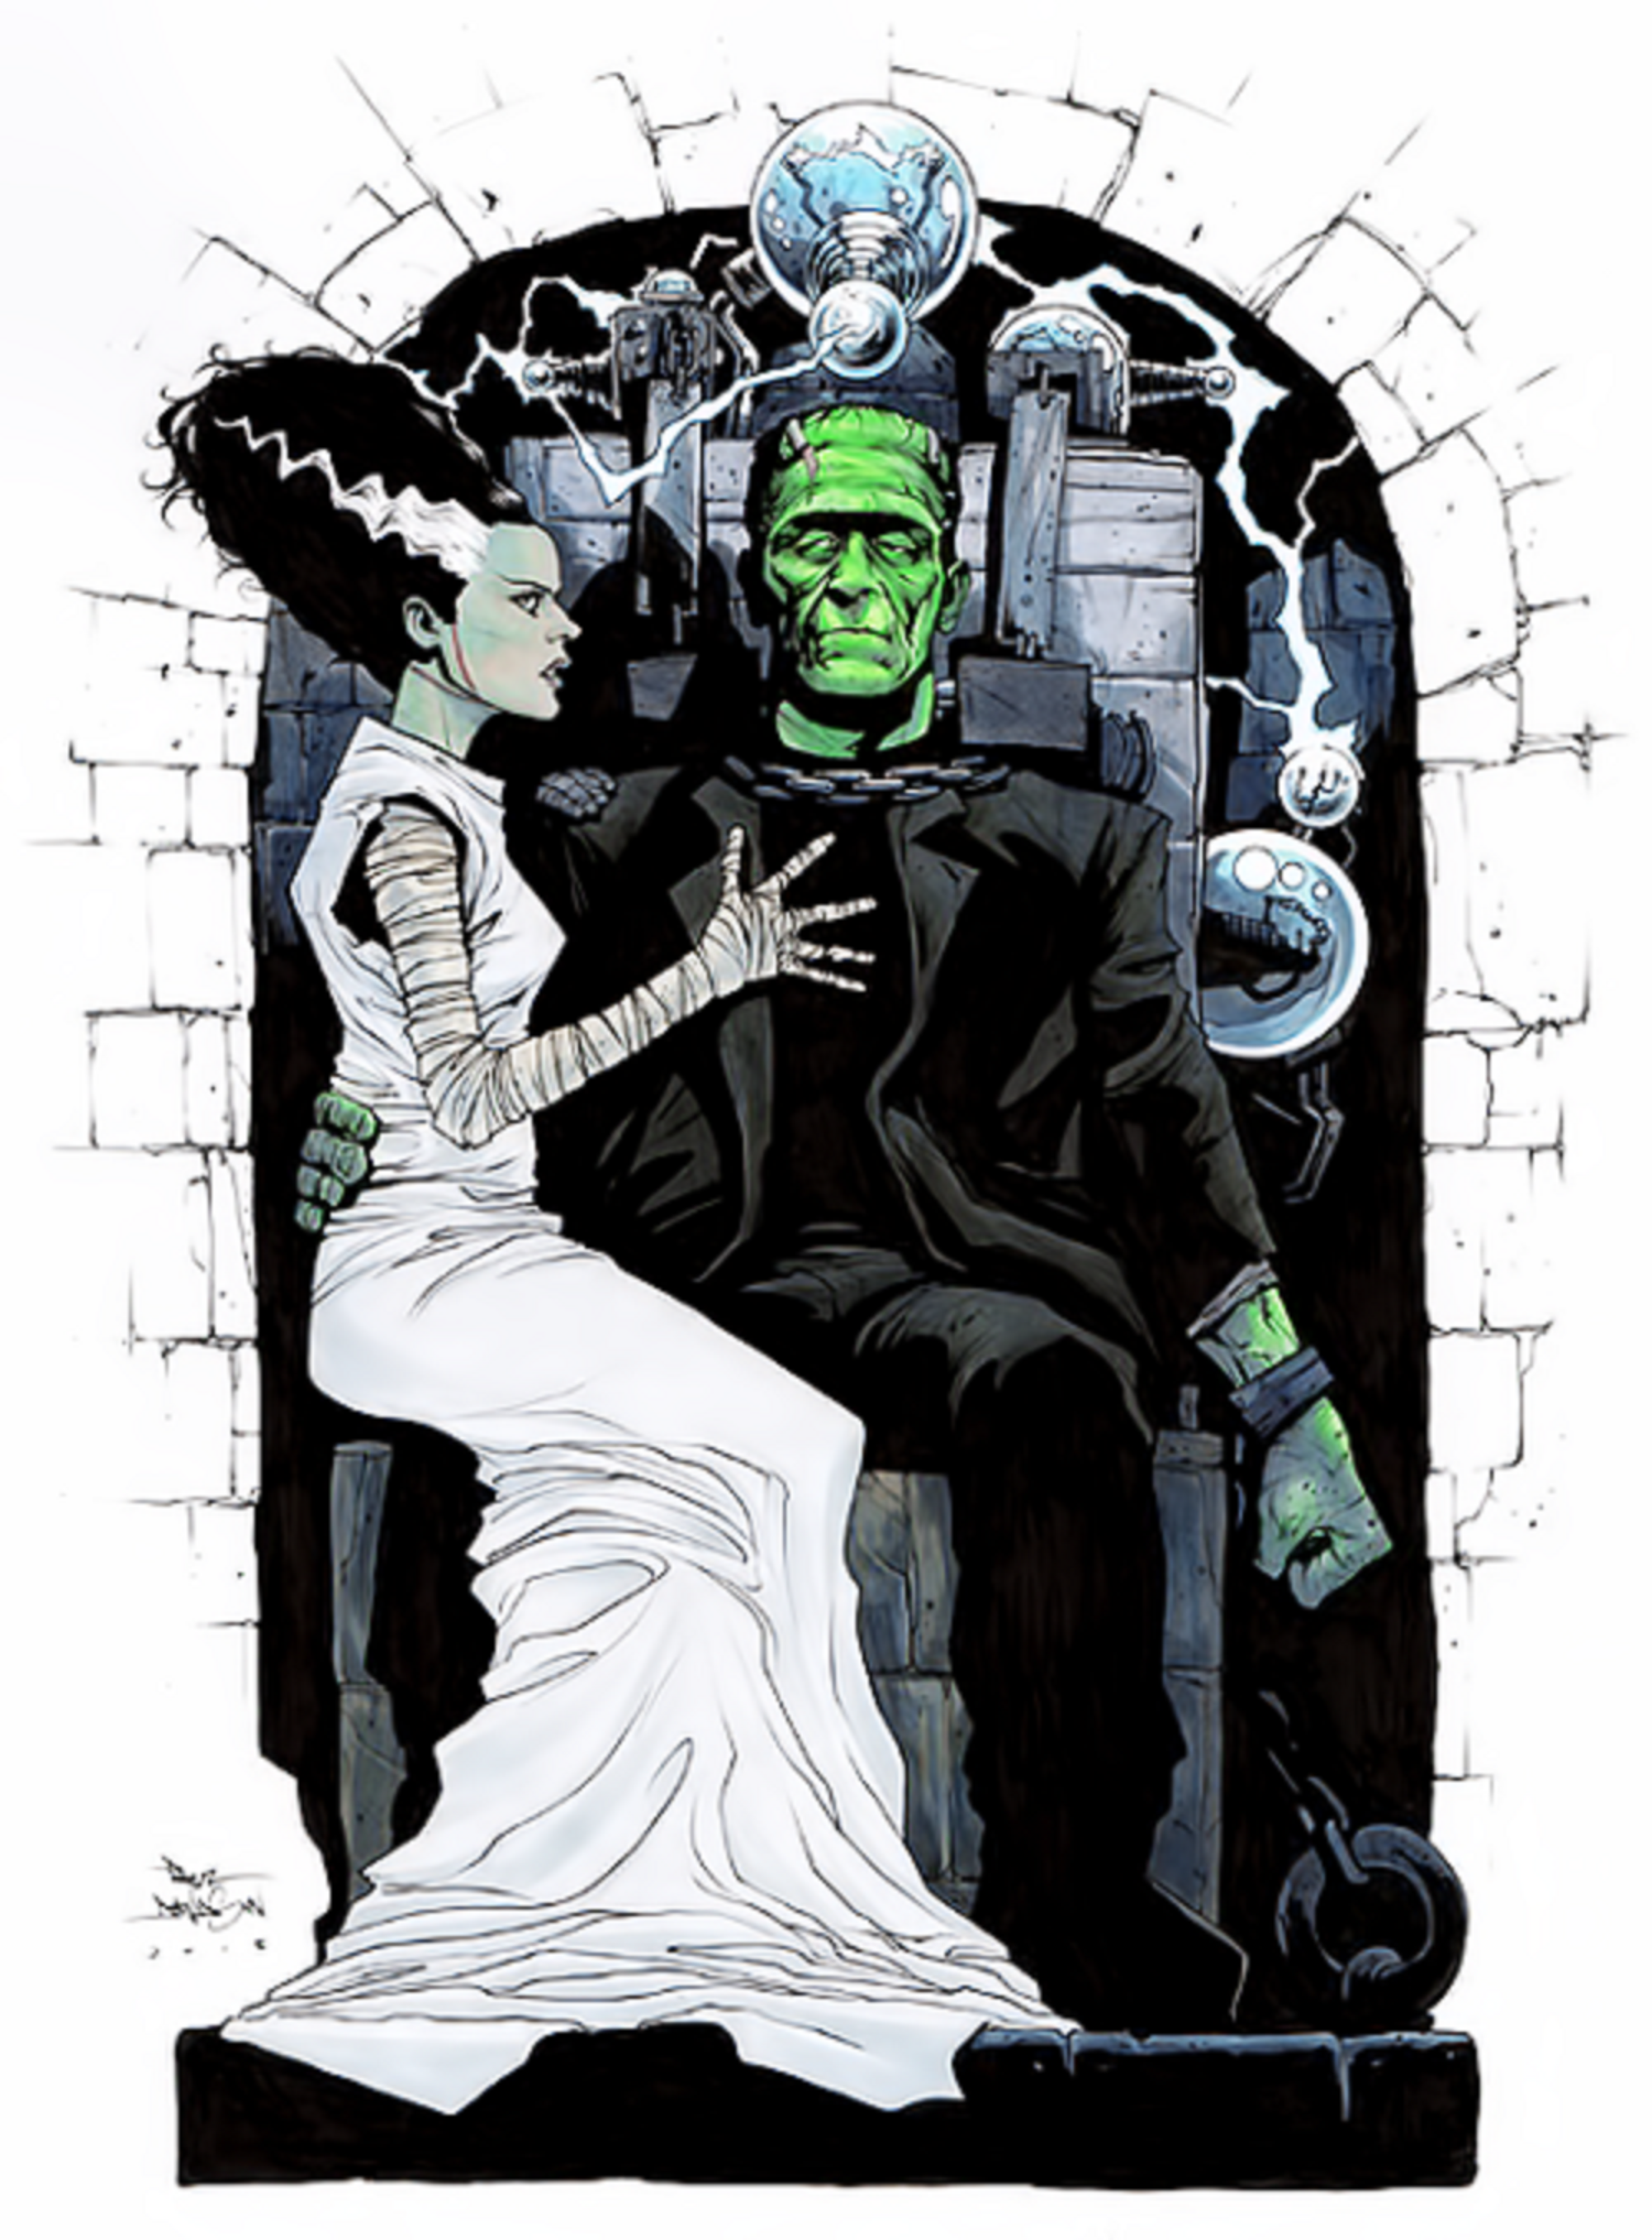 """comparing reactions to industrialism in frankenstein and Romanticism, a literary movement that emerged in the late 18th century in reaction to the industrial revolution, inspired mary shelley's """"frankenstein""""romanticism celebrated life and embraced ideas of intense emotion experienced by individuals, appreciation of the beauty of nature and non-restrictive power of imagination, all of which are."""